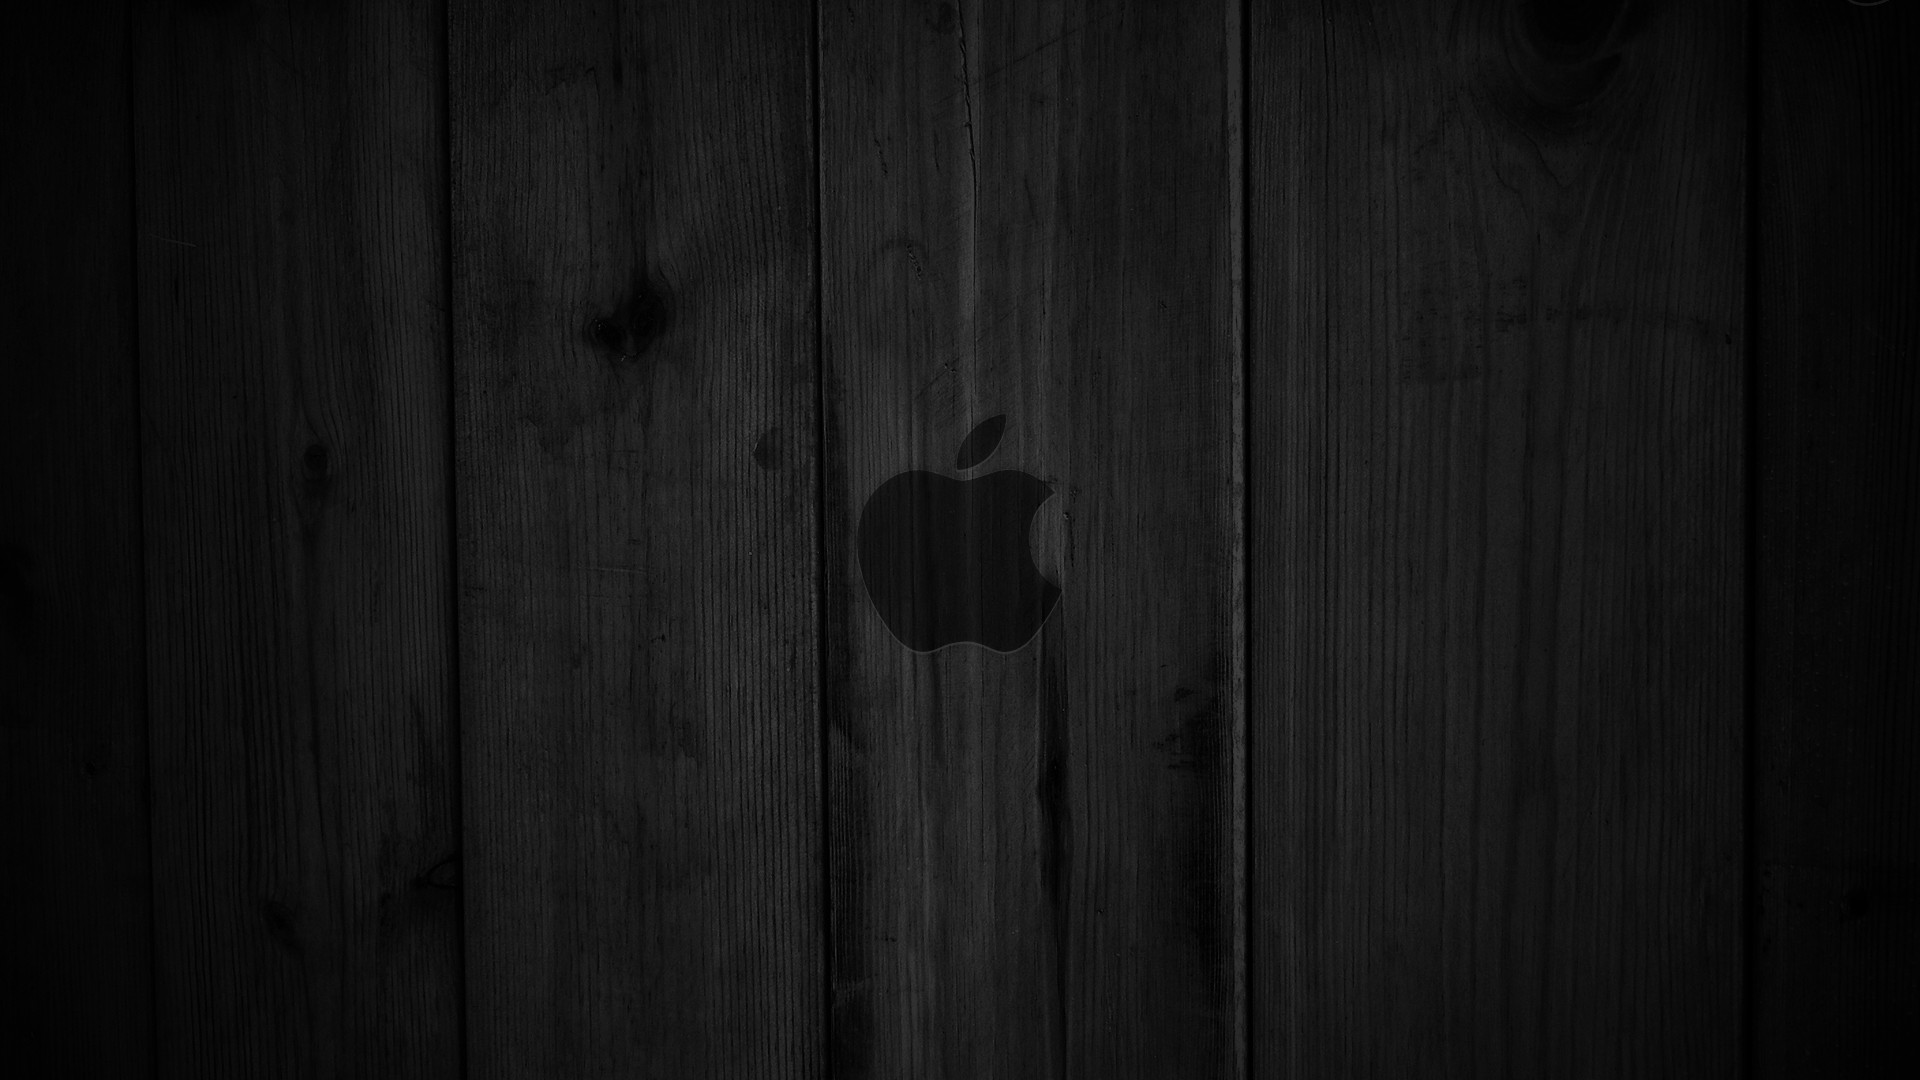 1920x1080 Dark wood OS X Apple wallpaper